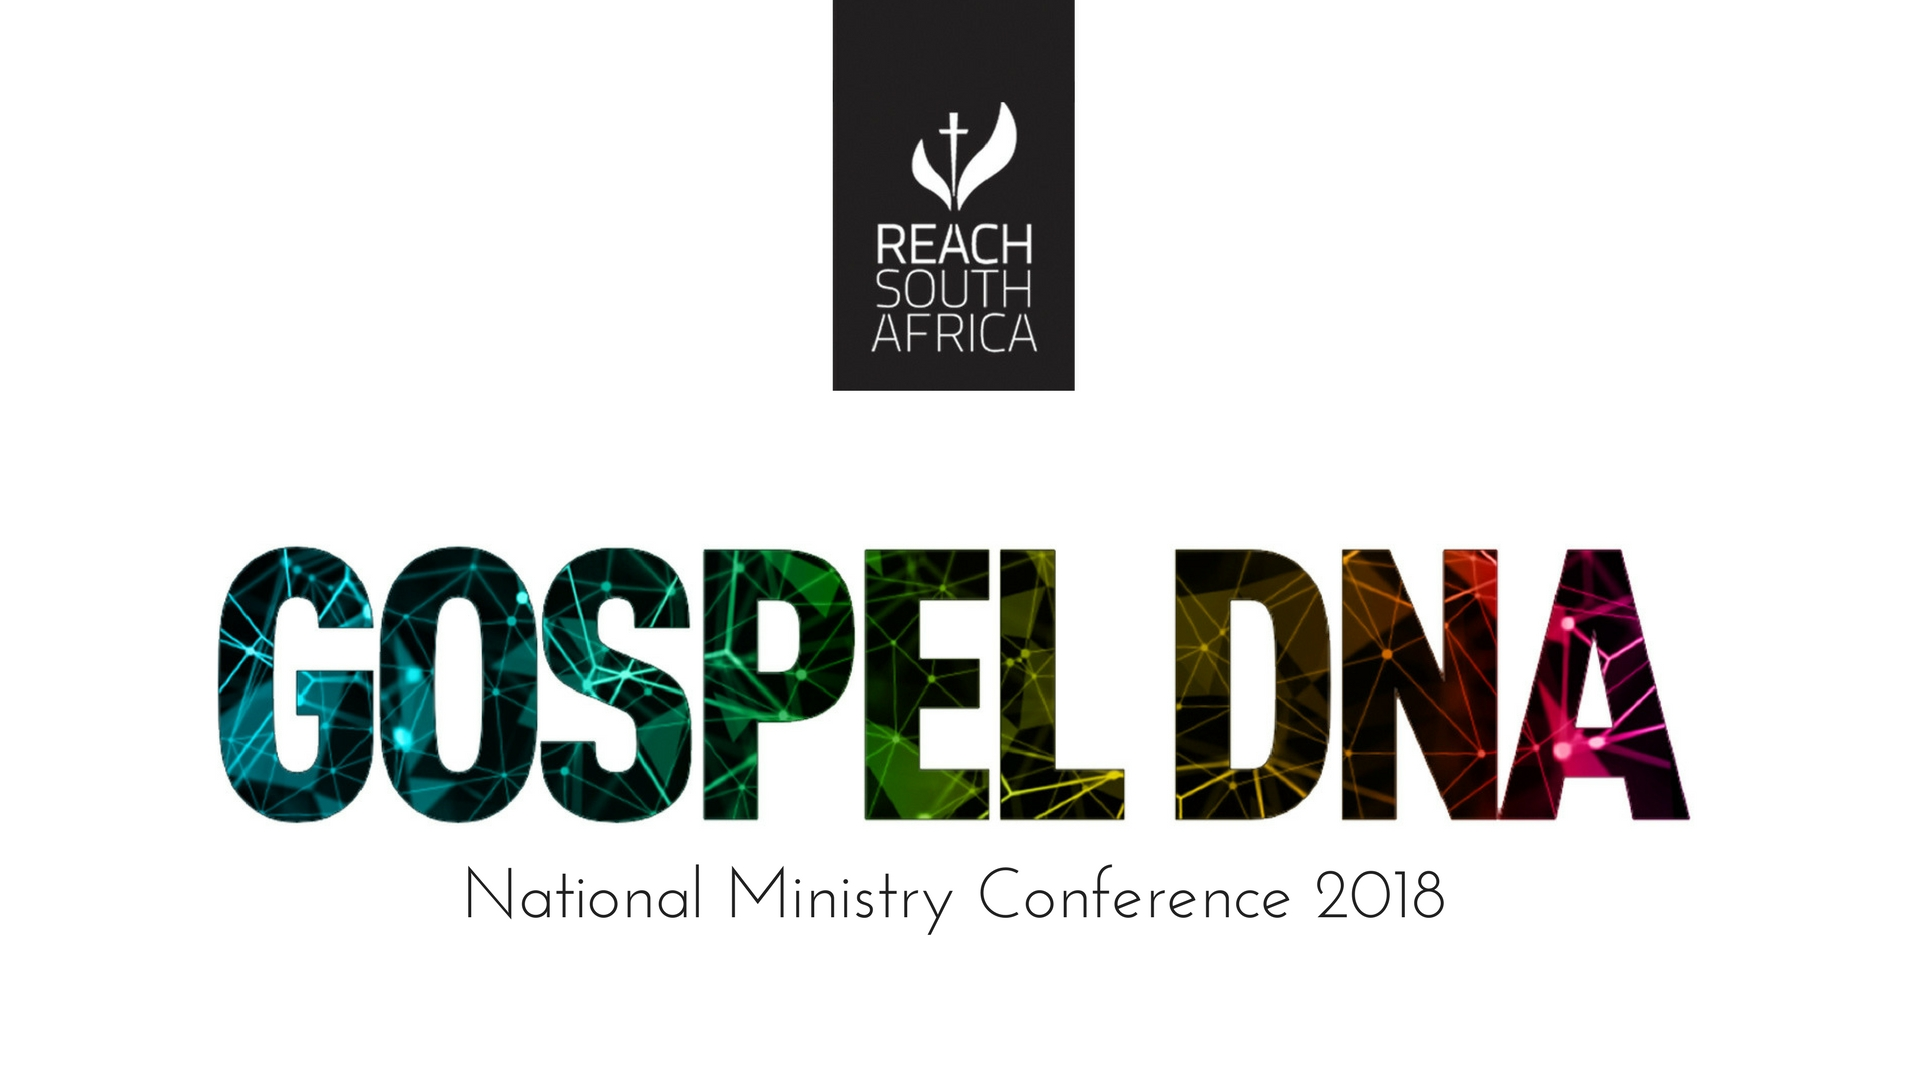 National Ministry Conference 2018 Final